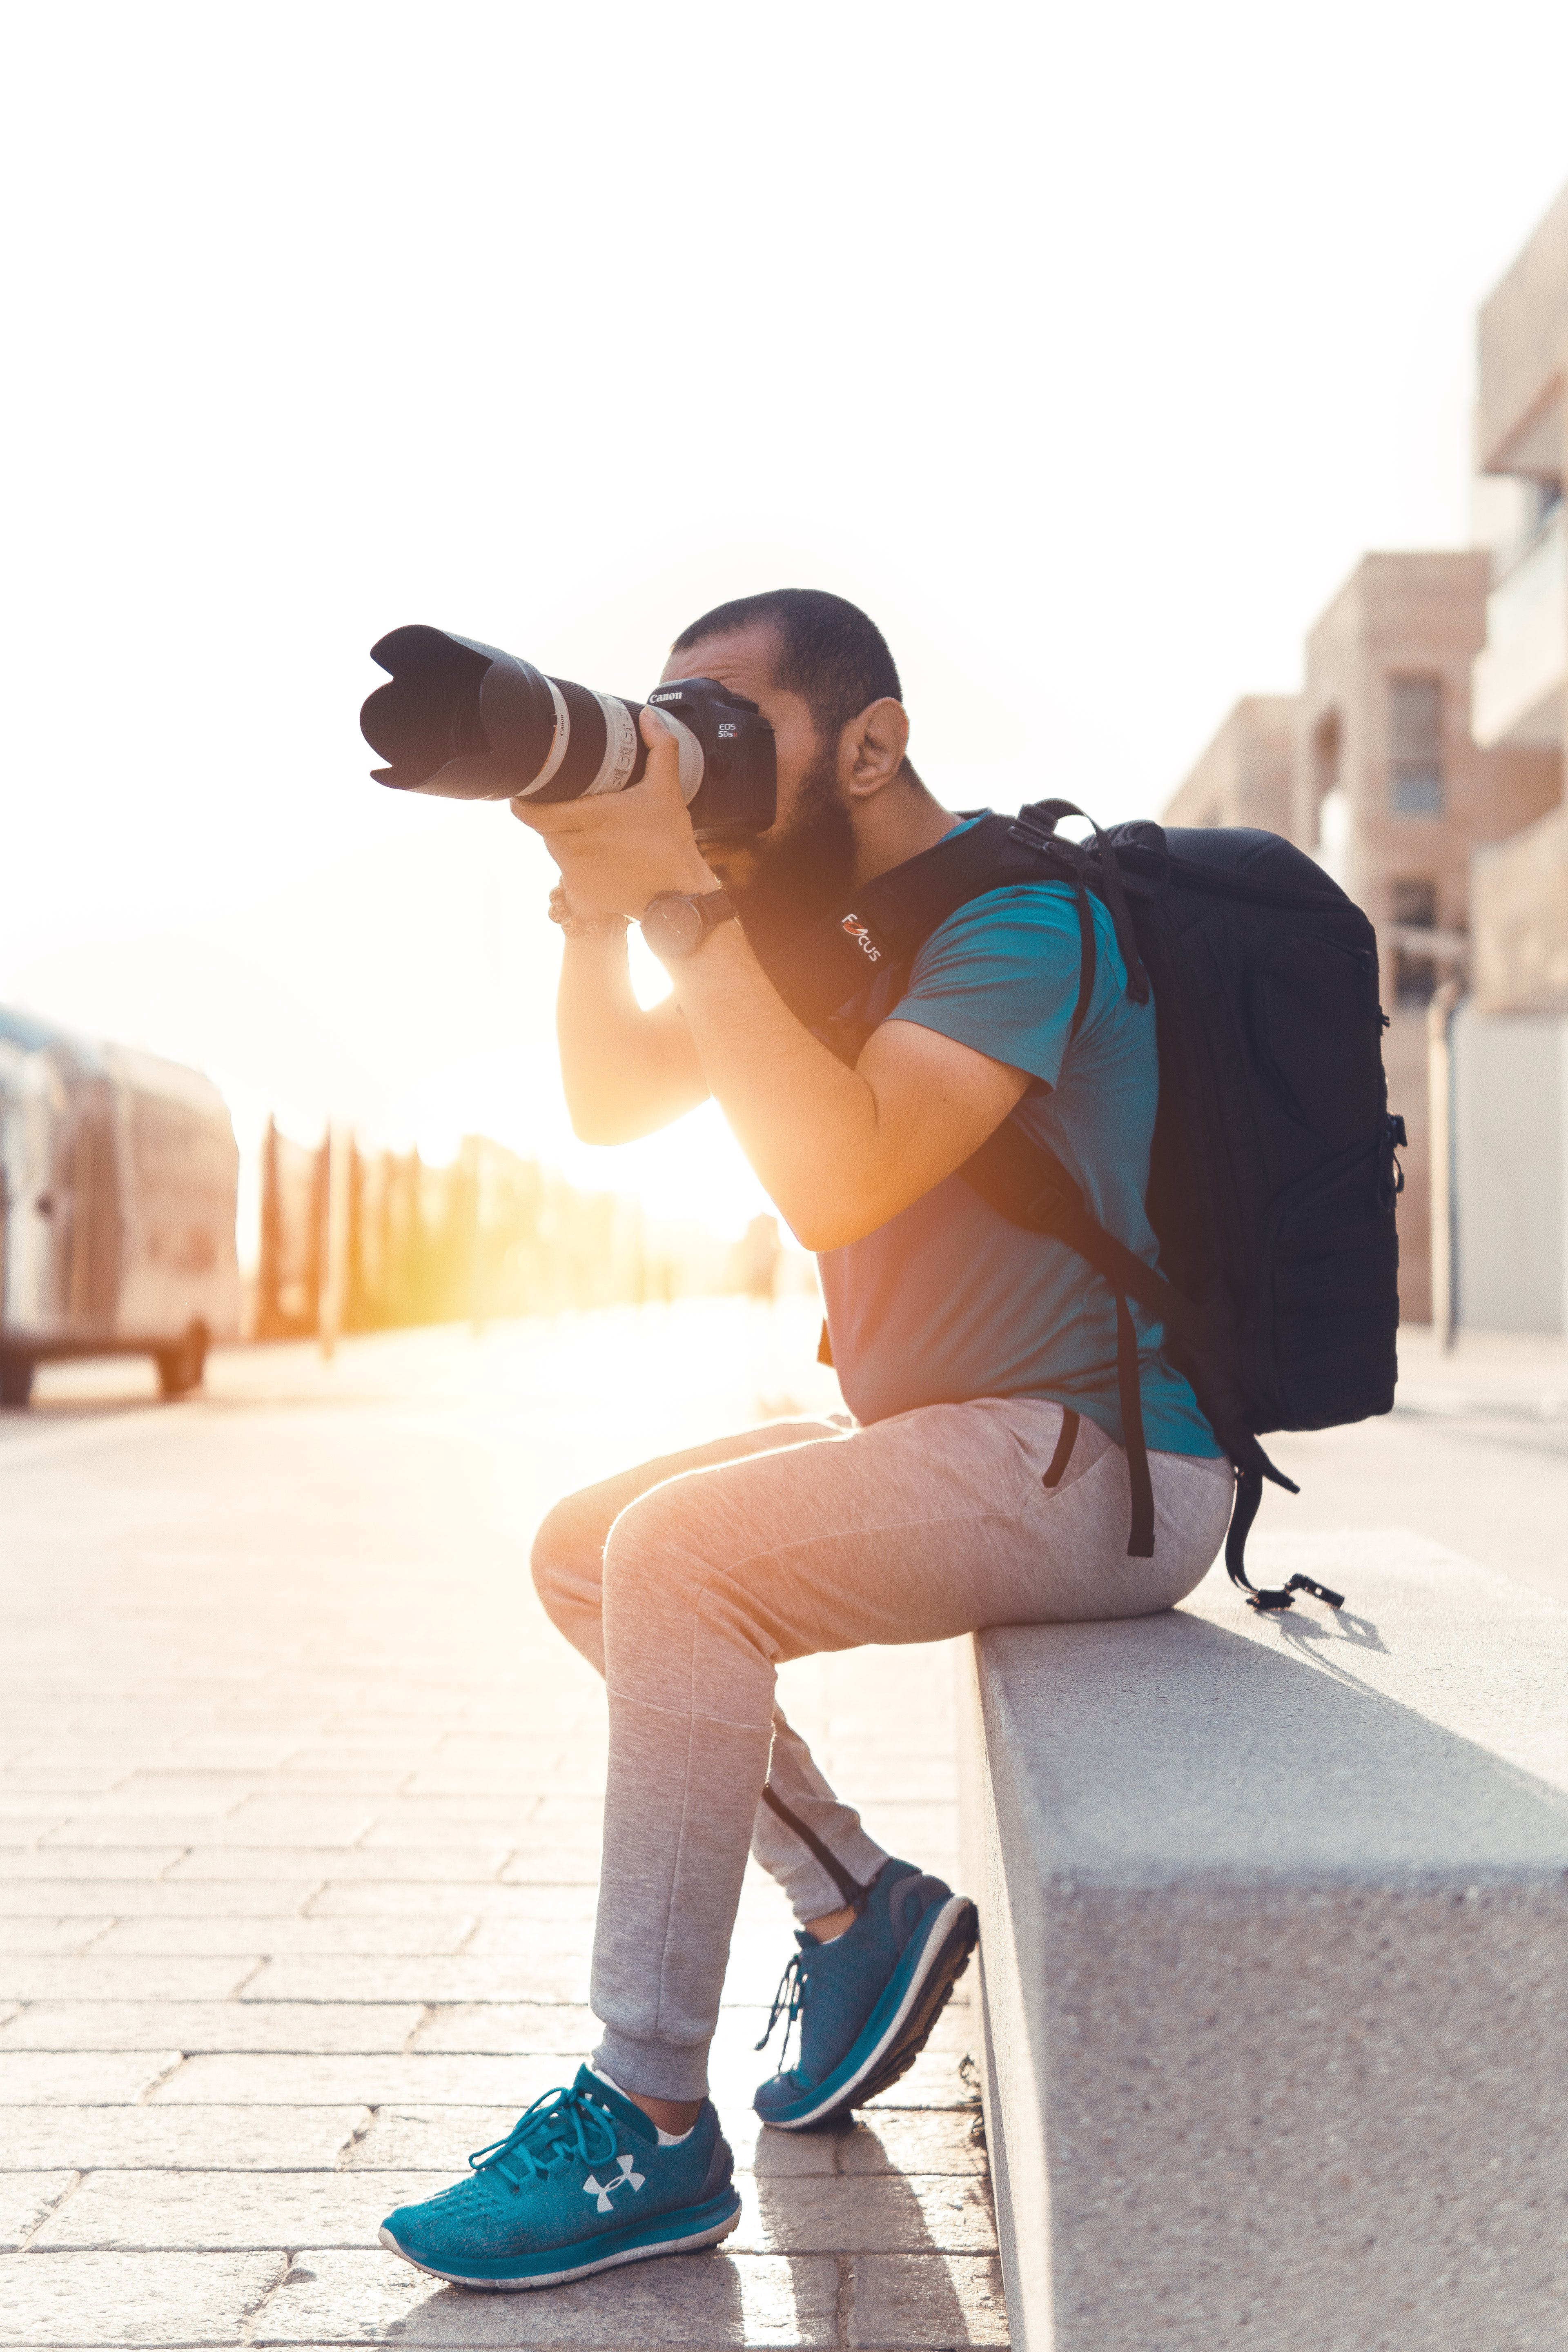 Man Carrying Backpack Taking Photo Using Dslr Camera